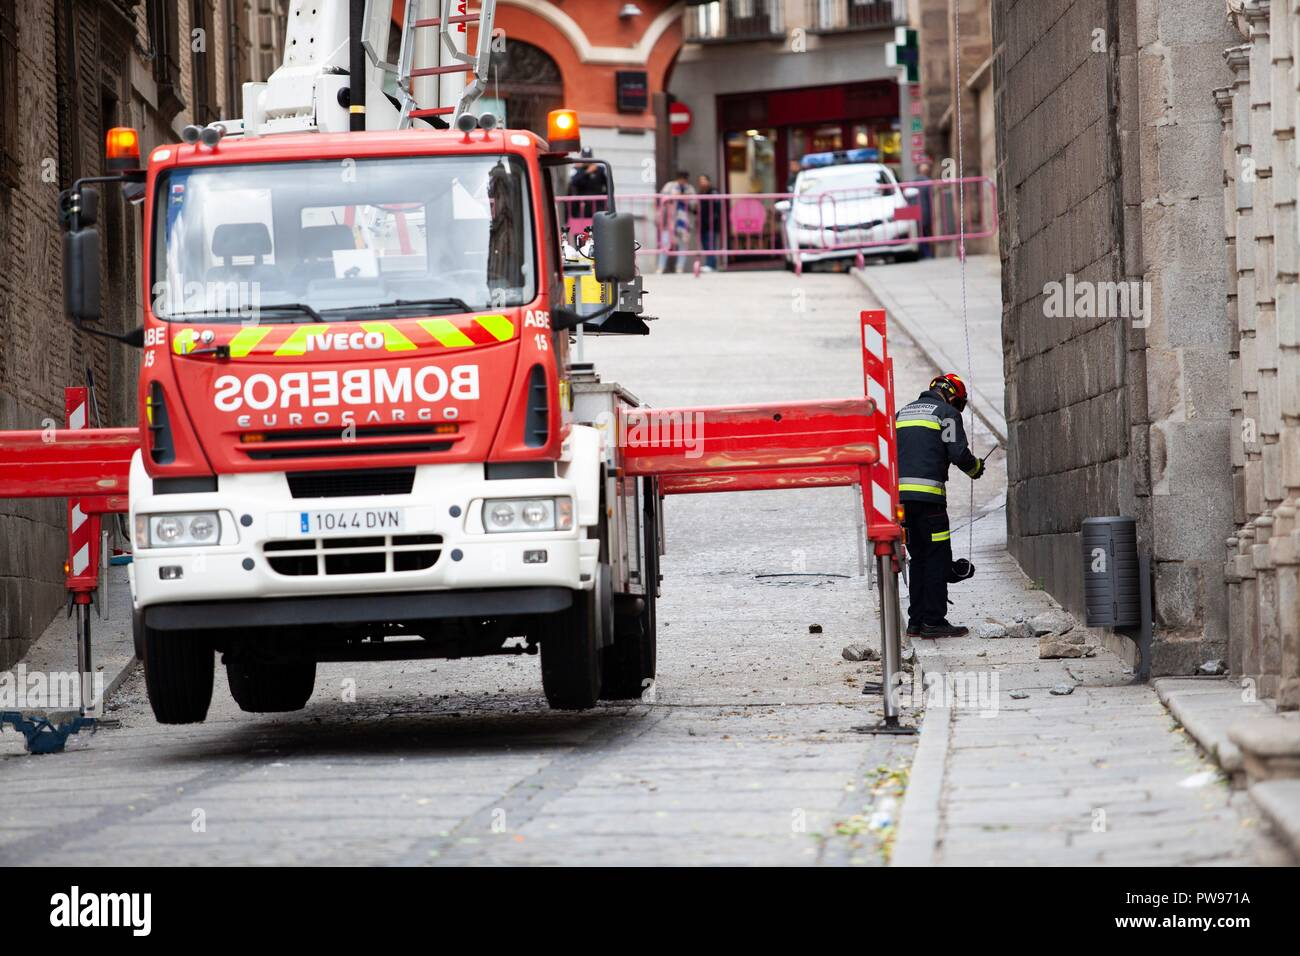 Toledo, Spain  14th Oct, 2018  Firefighters inspect the